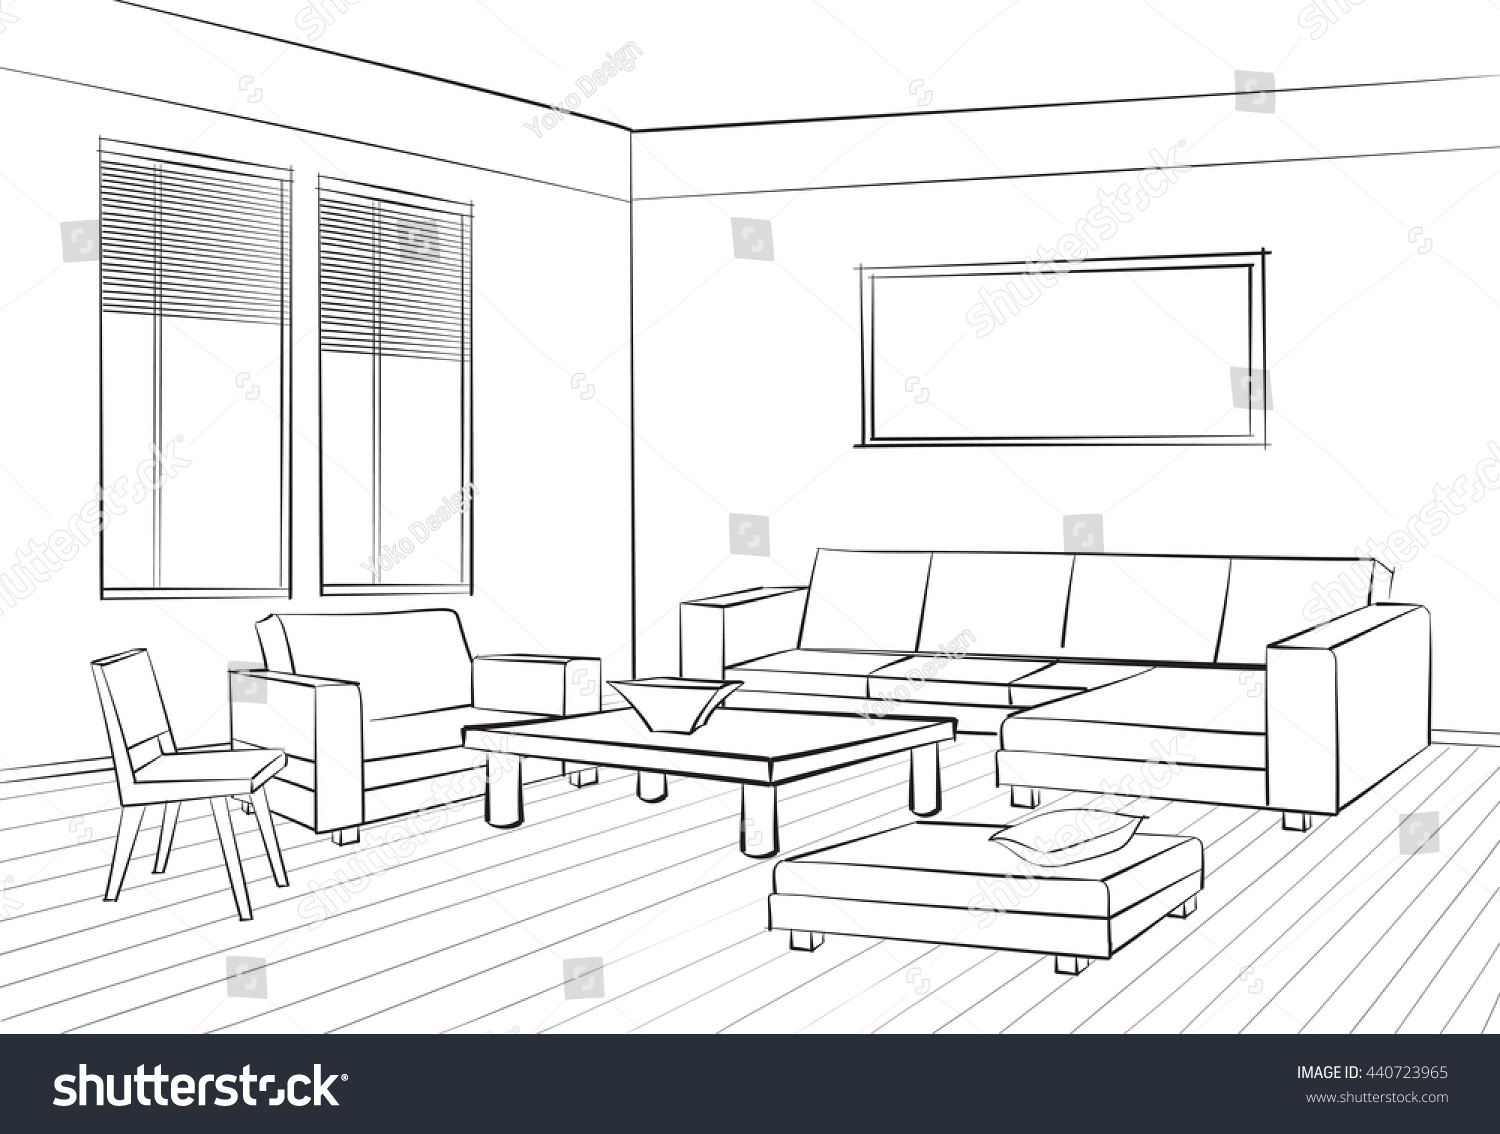 Home interior furniture sofa armchair table stock vector for Drawing room decoration